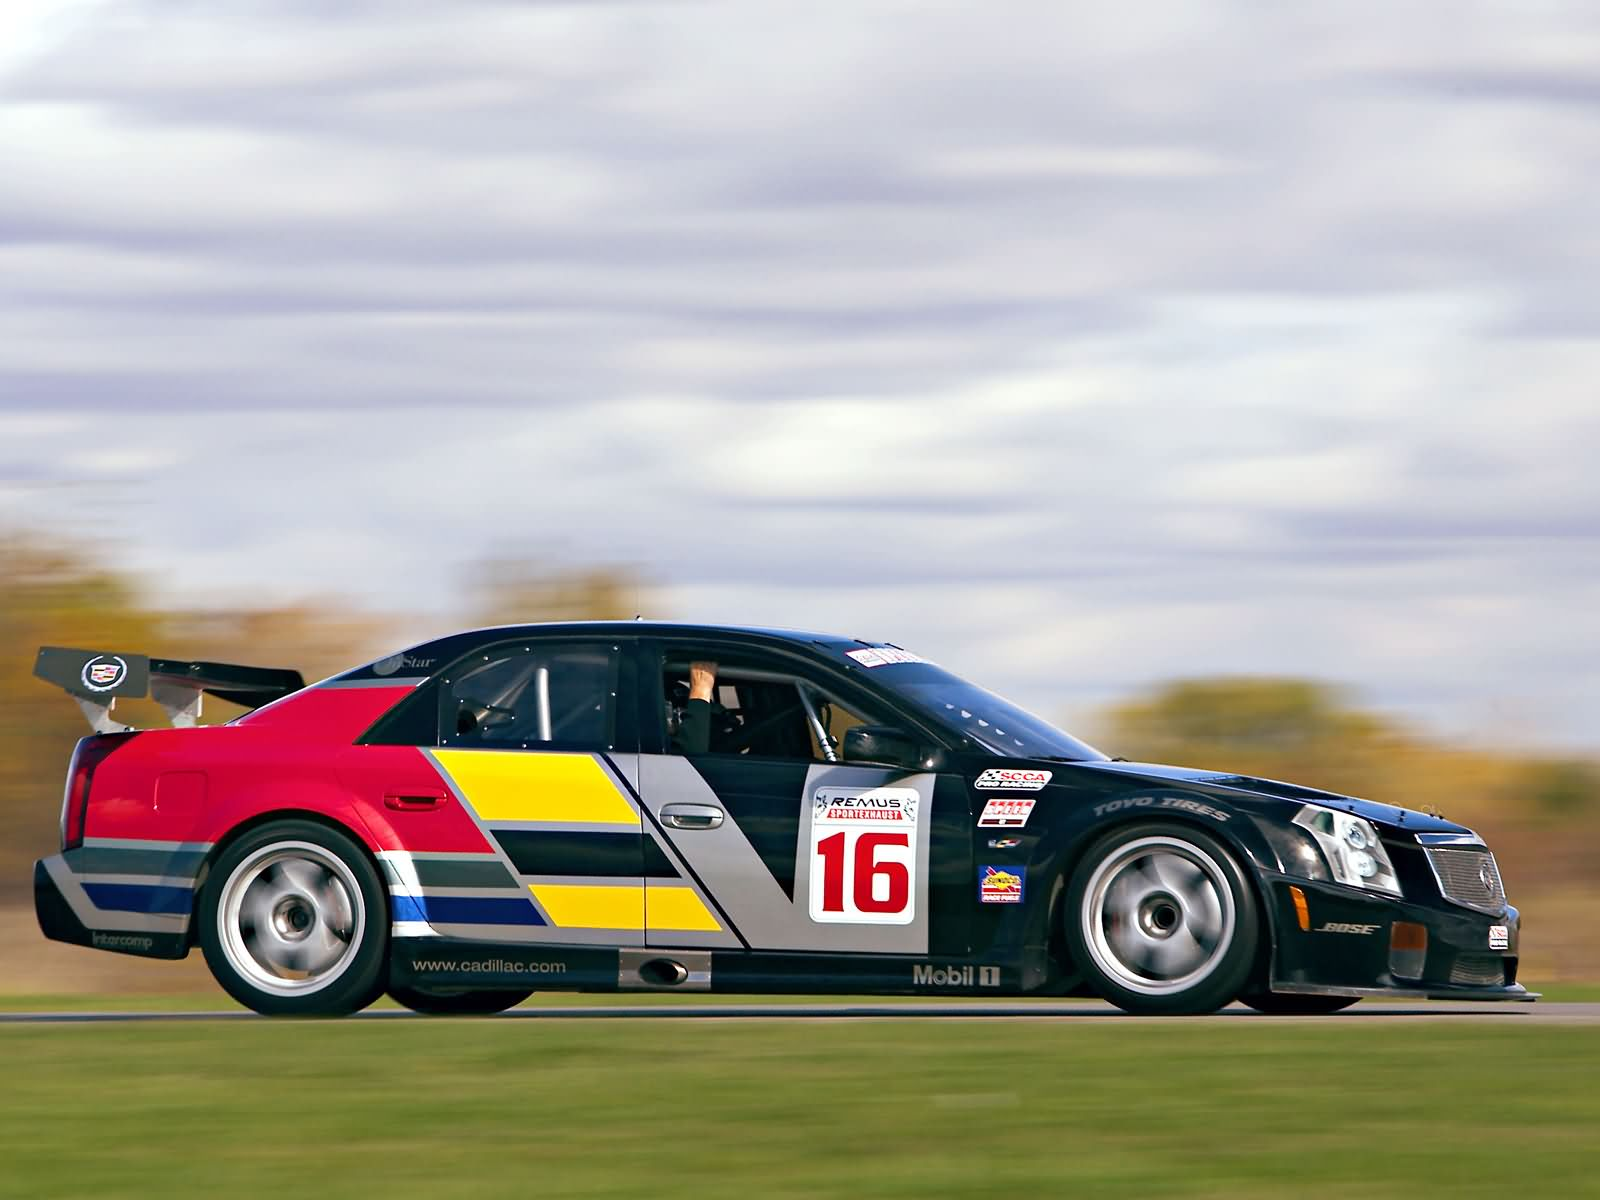 Cadillac CTS-V Race Car photo 8109